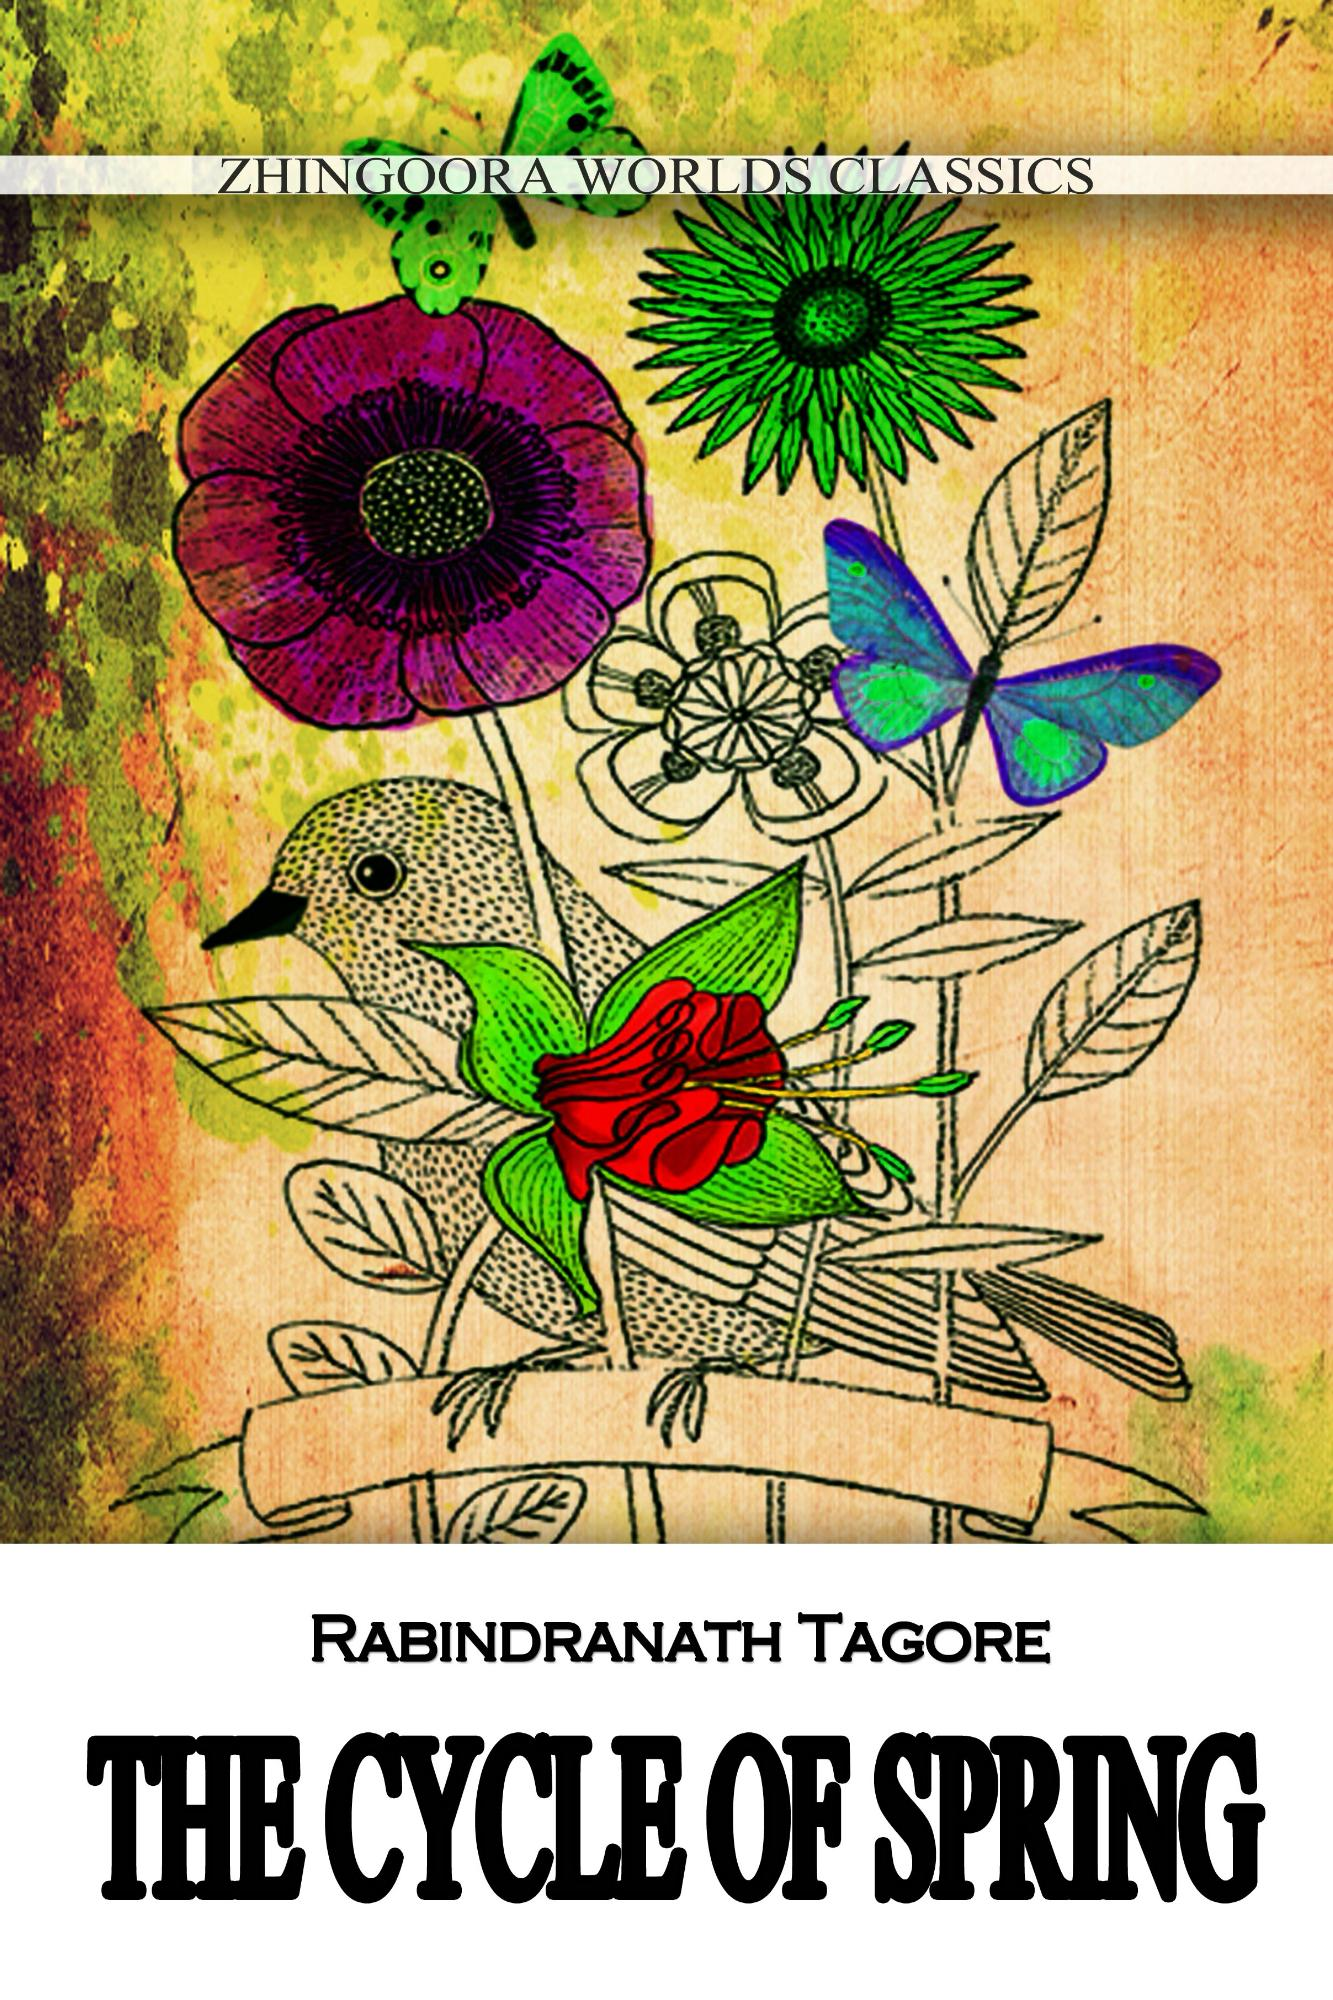 Rabindranath Tagore - The Cycle Of Spring